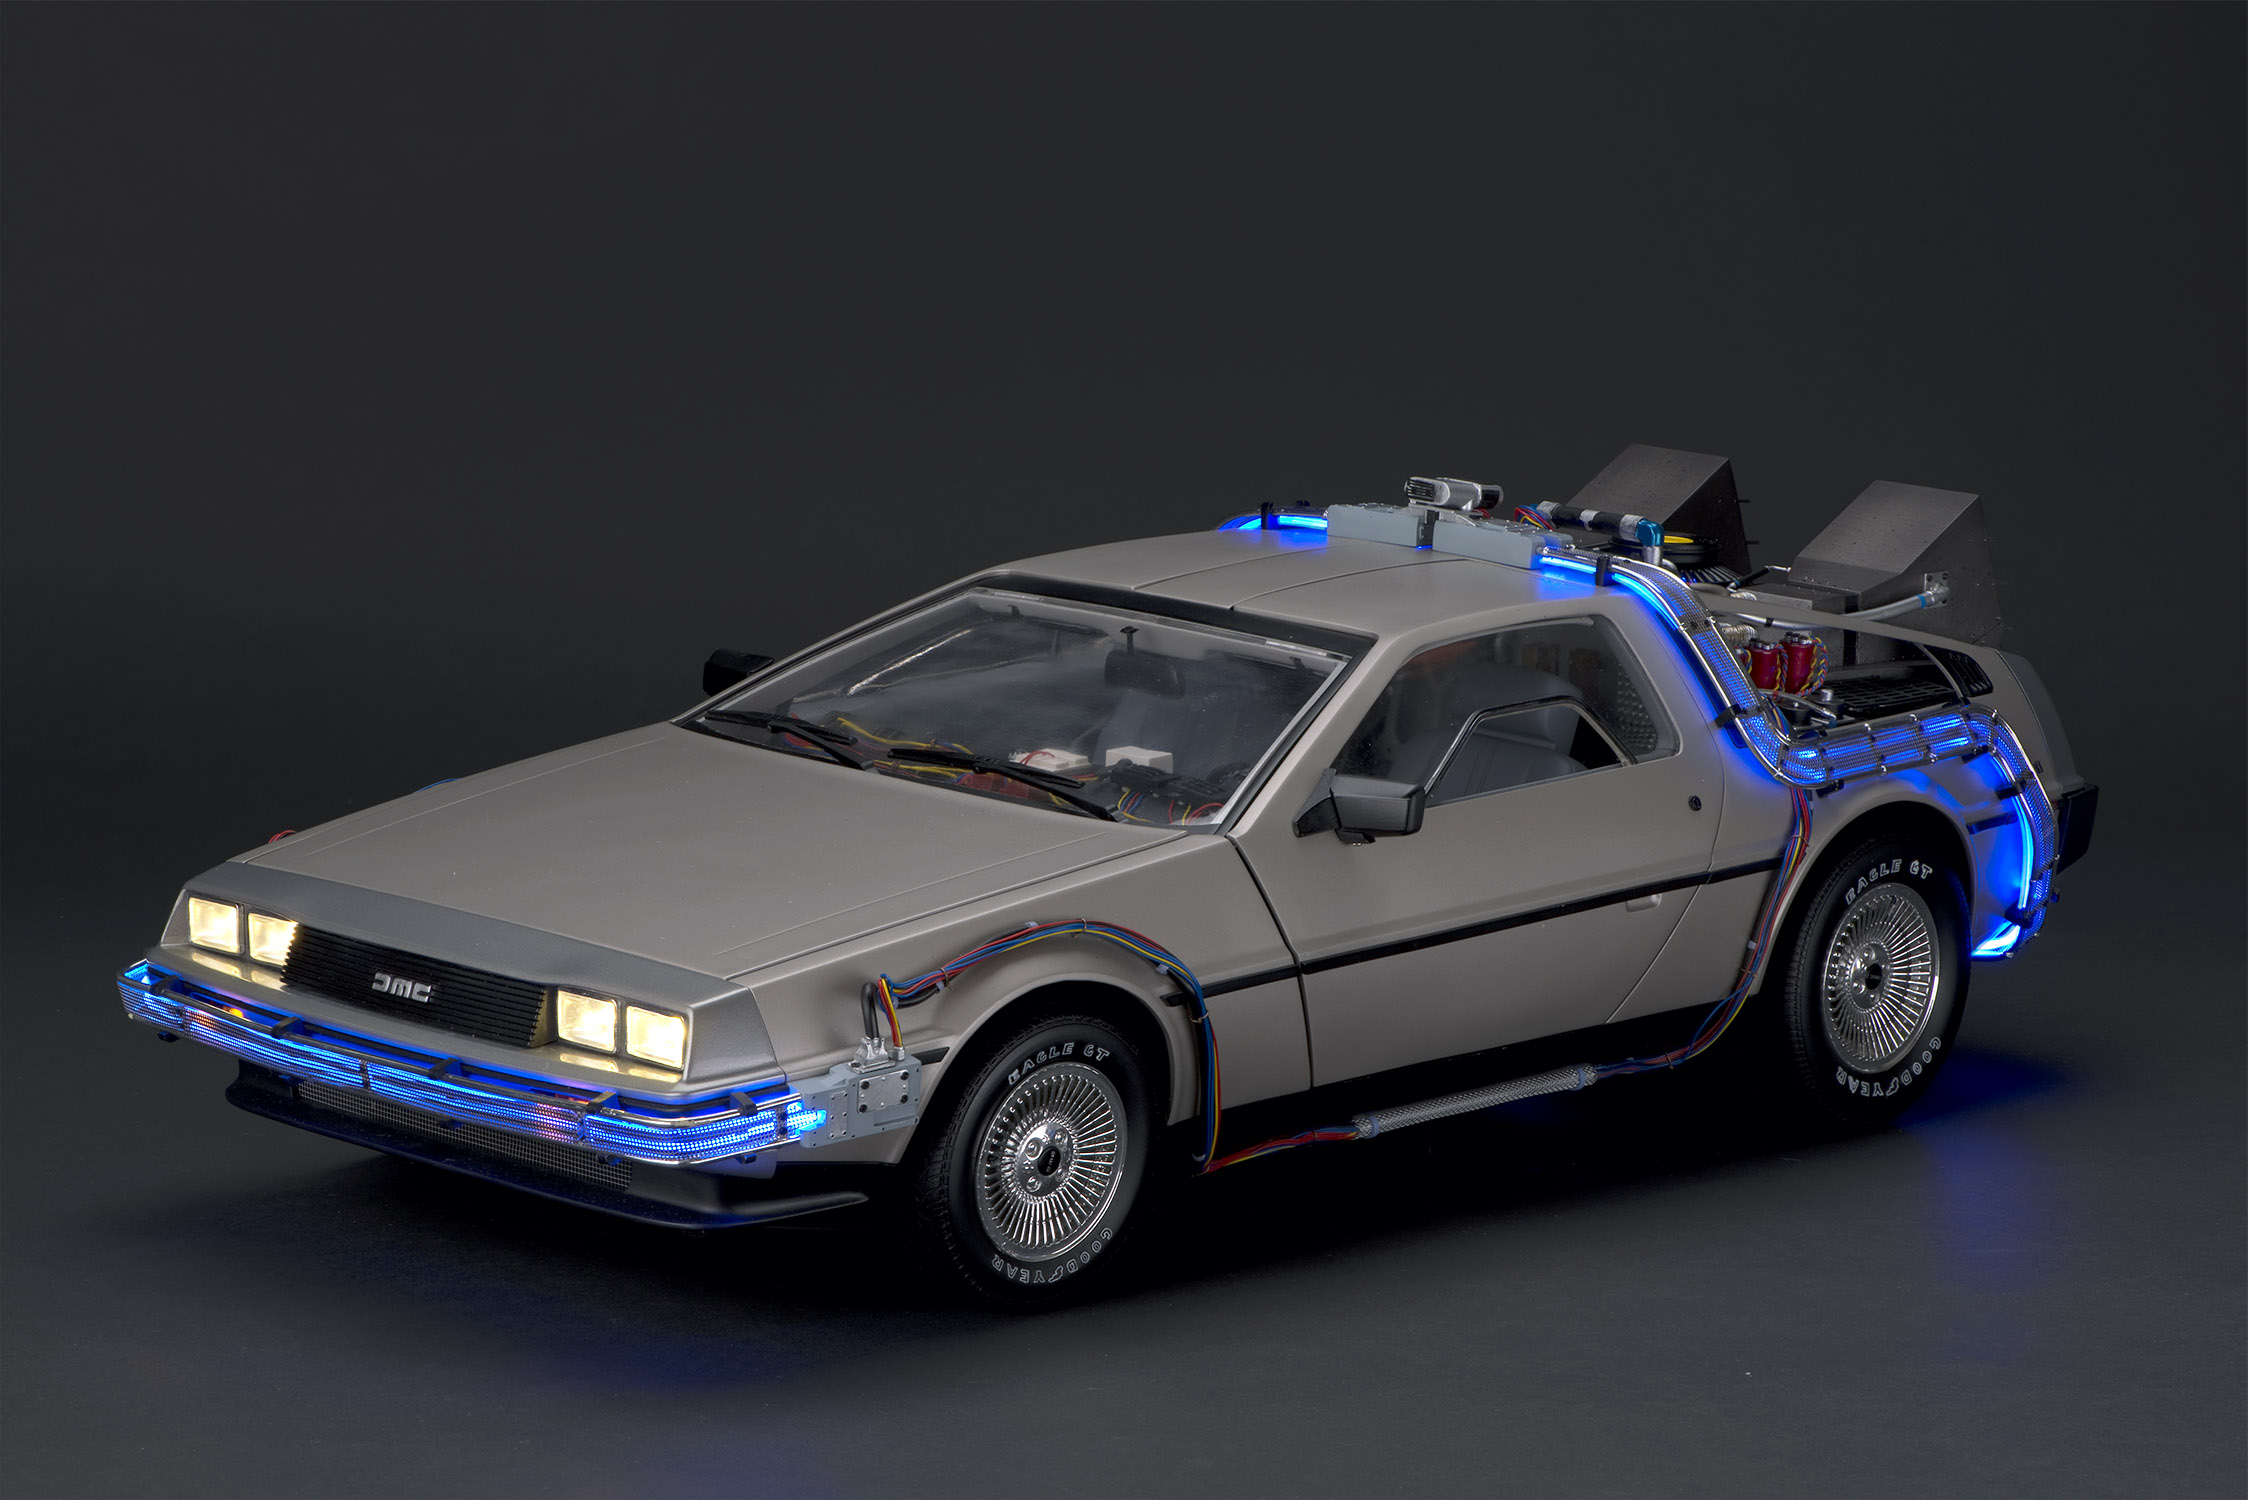 delorean_022.jpg